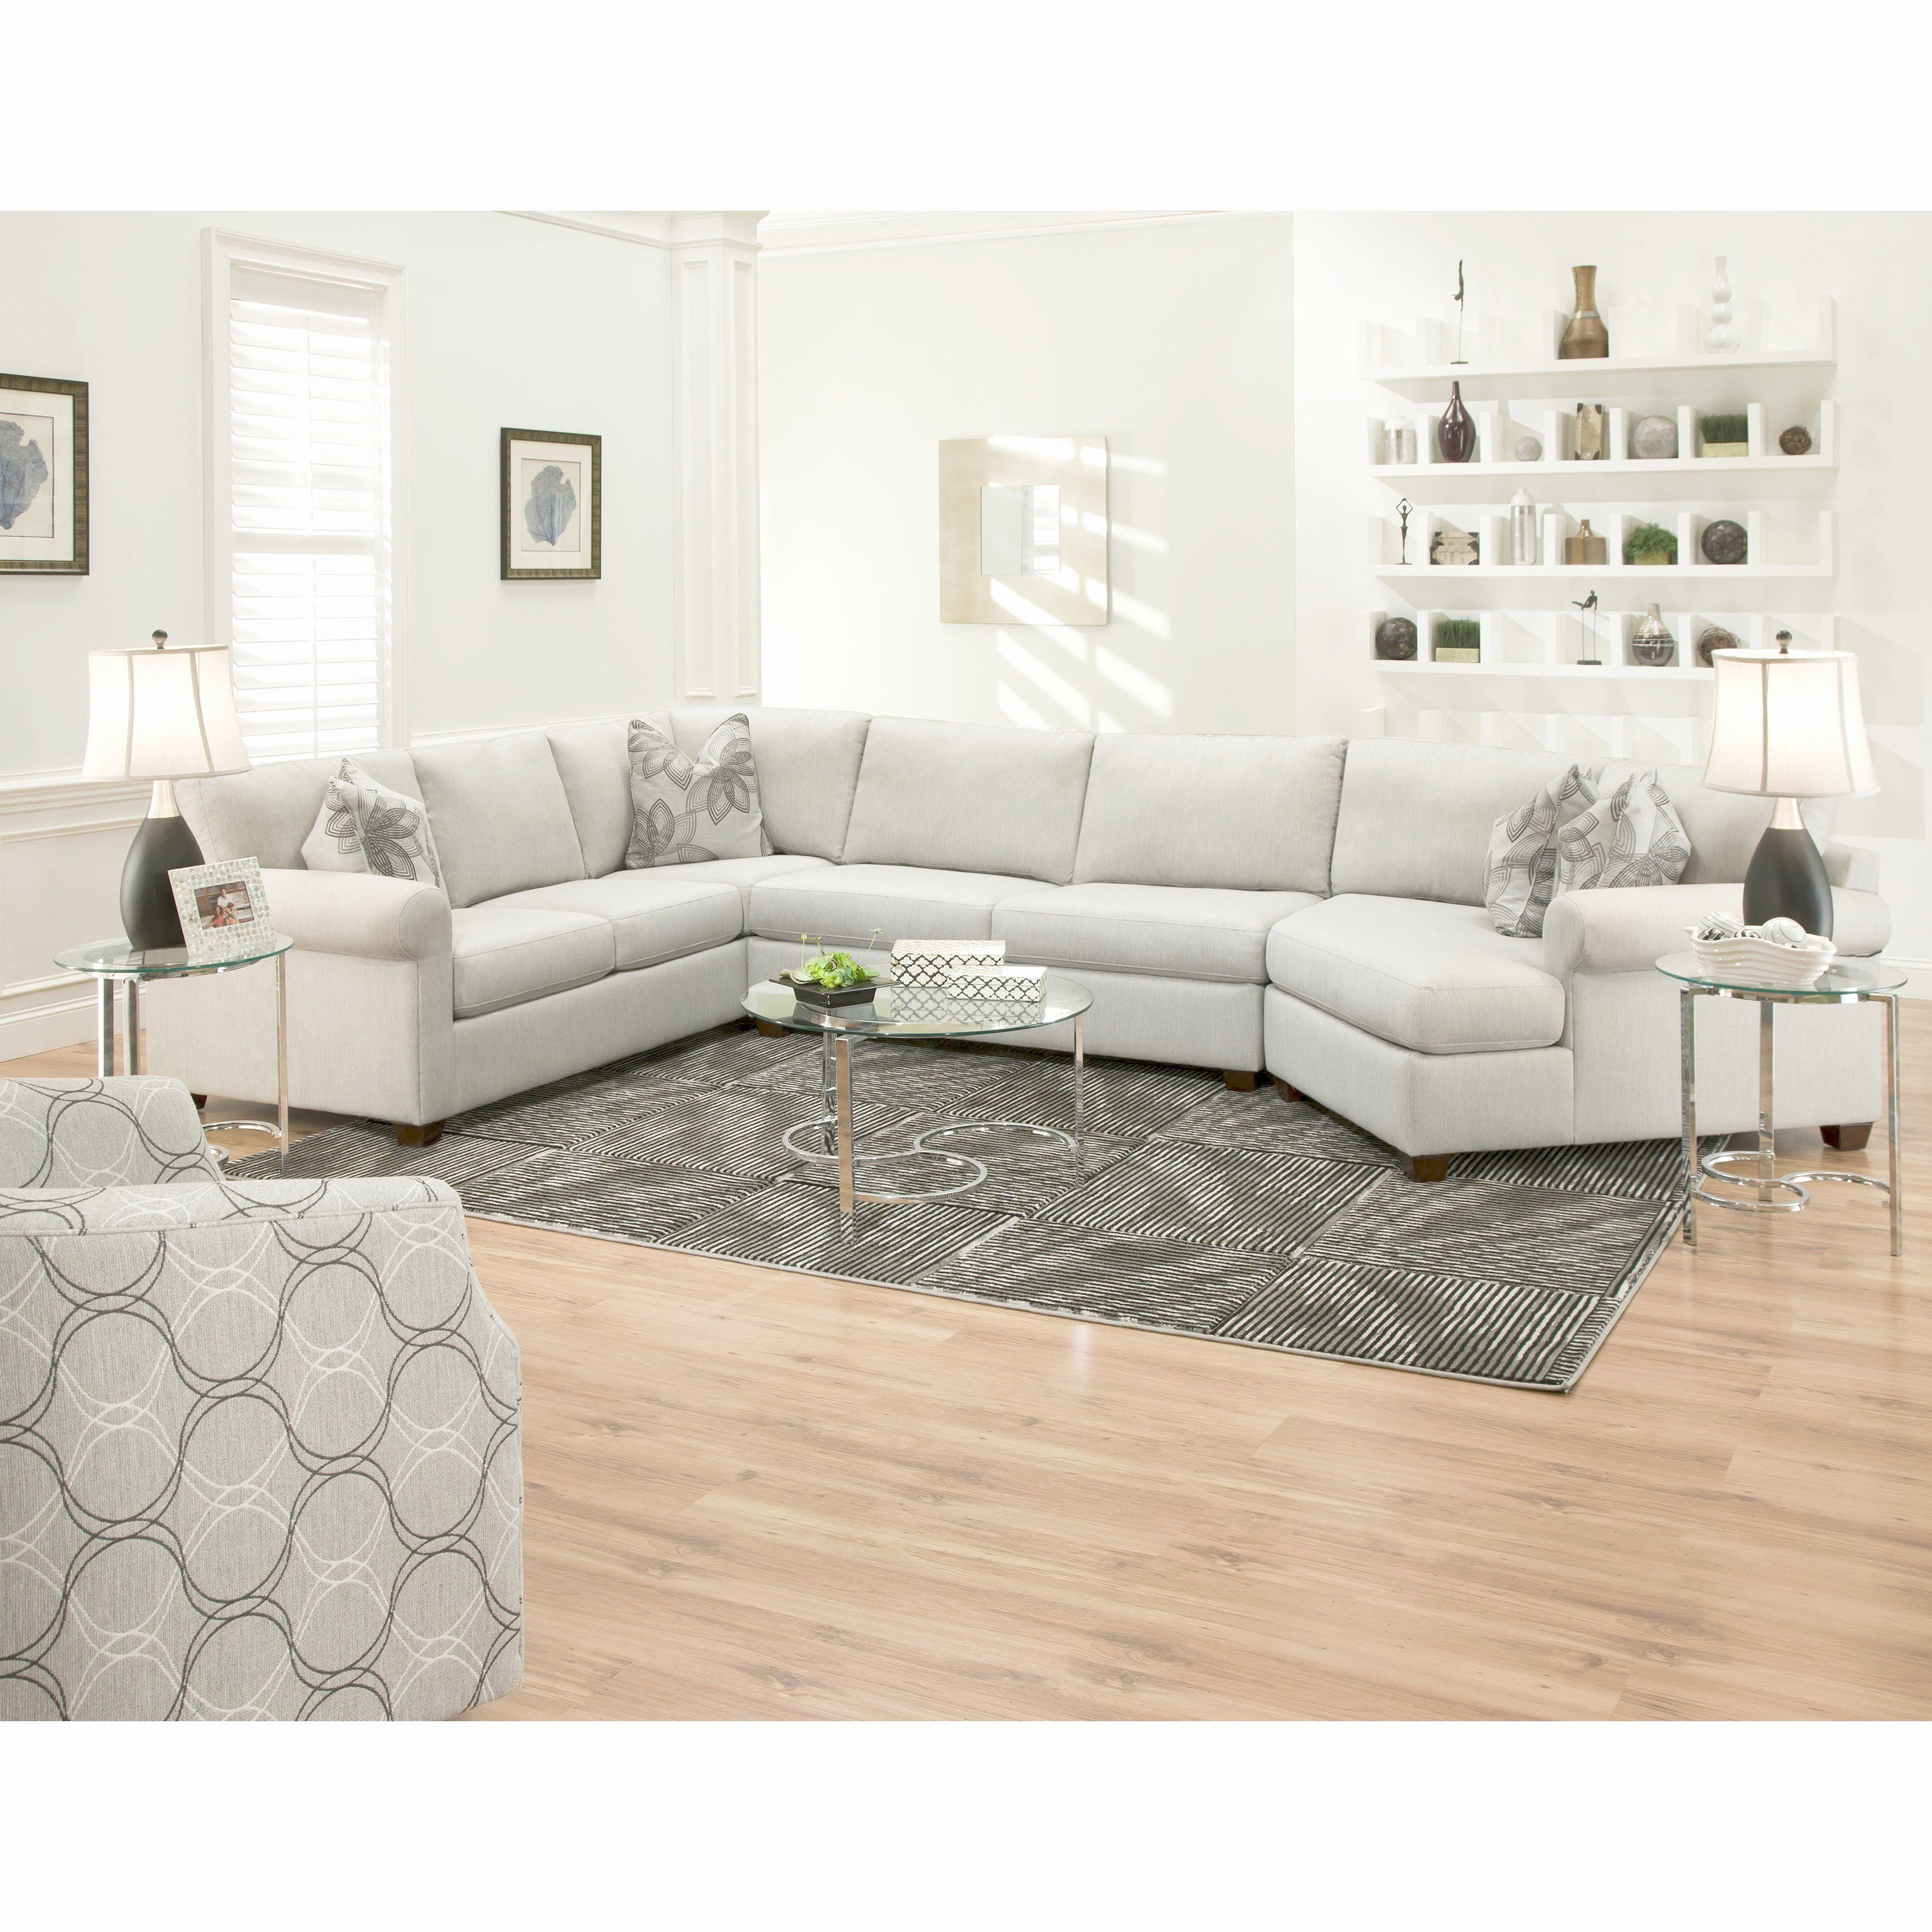 Luxury Best Leather Sofa Brands Graphics Best Leather Sofa